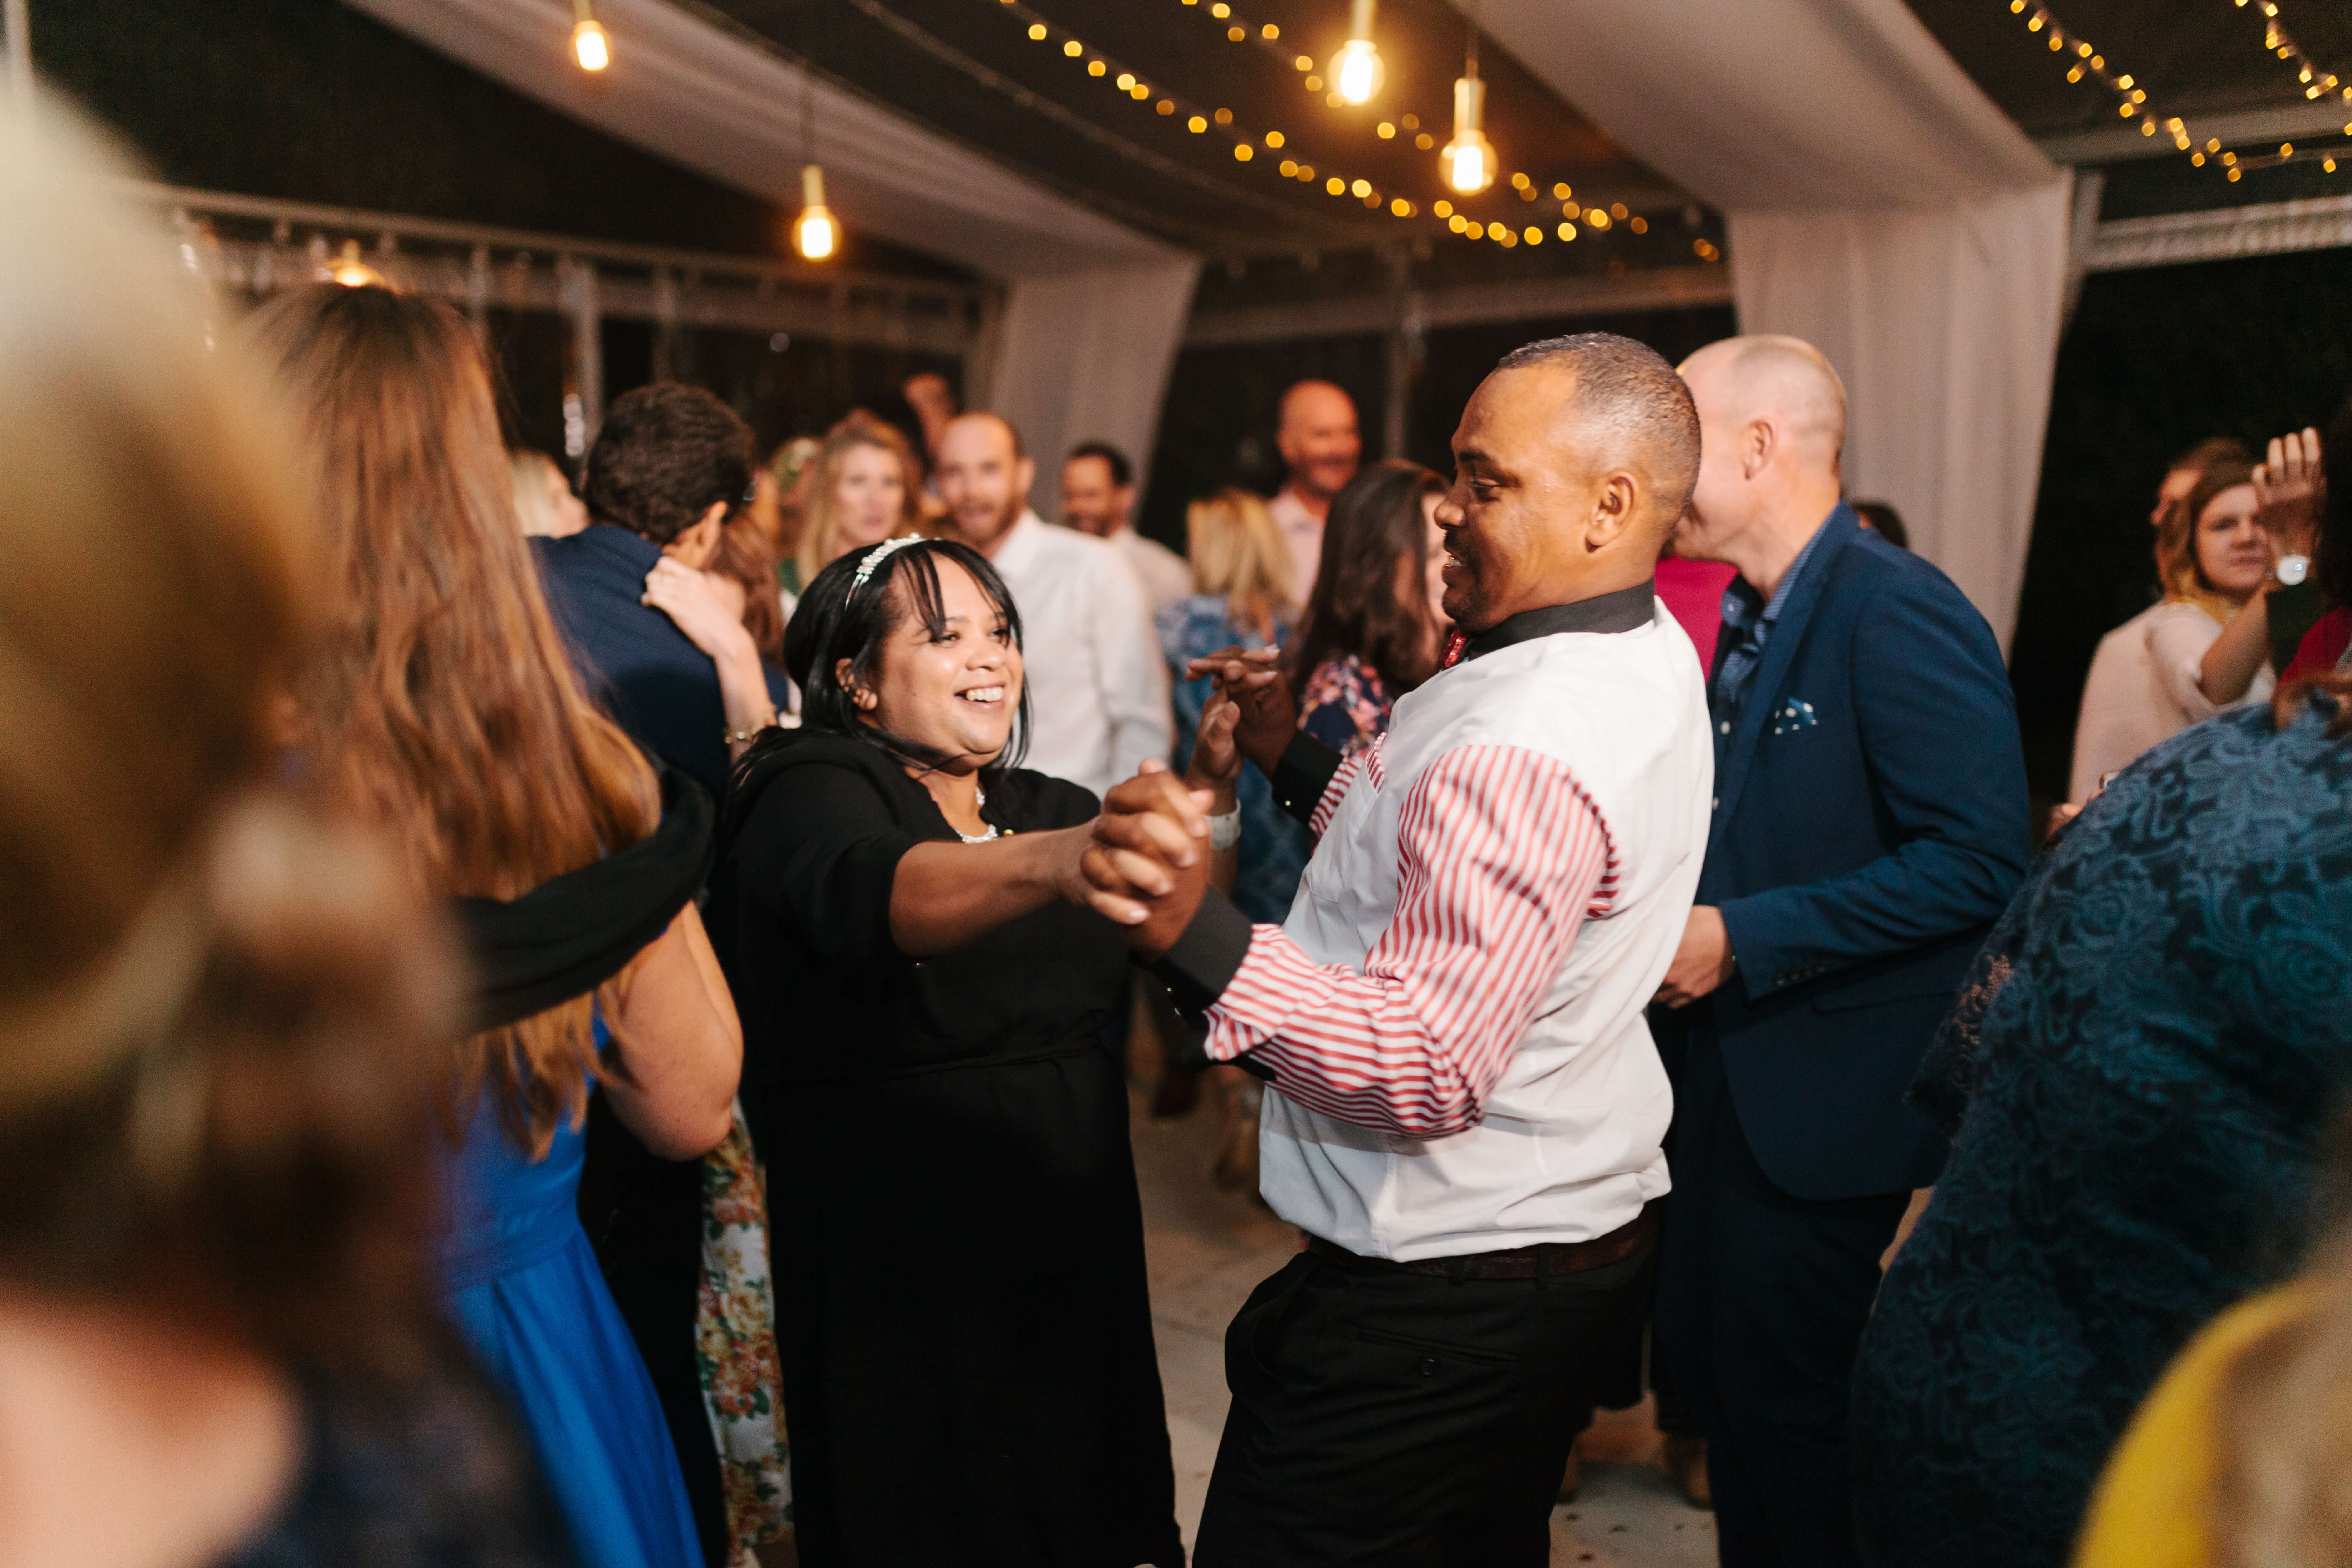 A couple breaking it down on a wedding dance floor to a song they love.